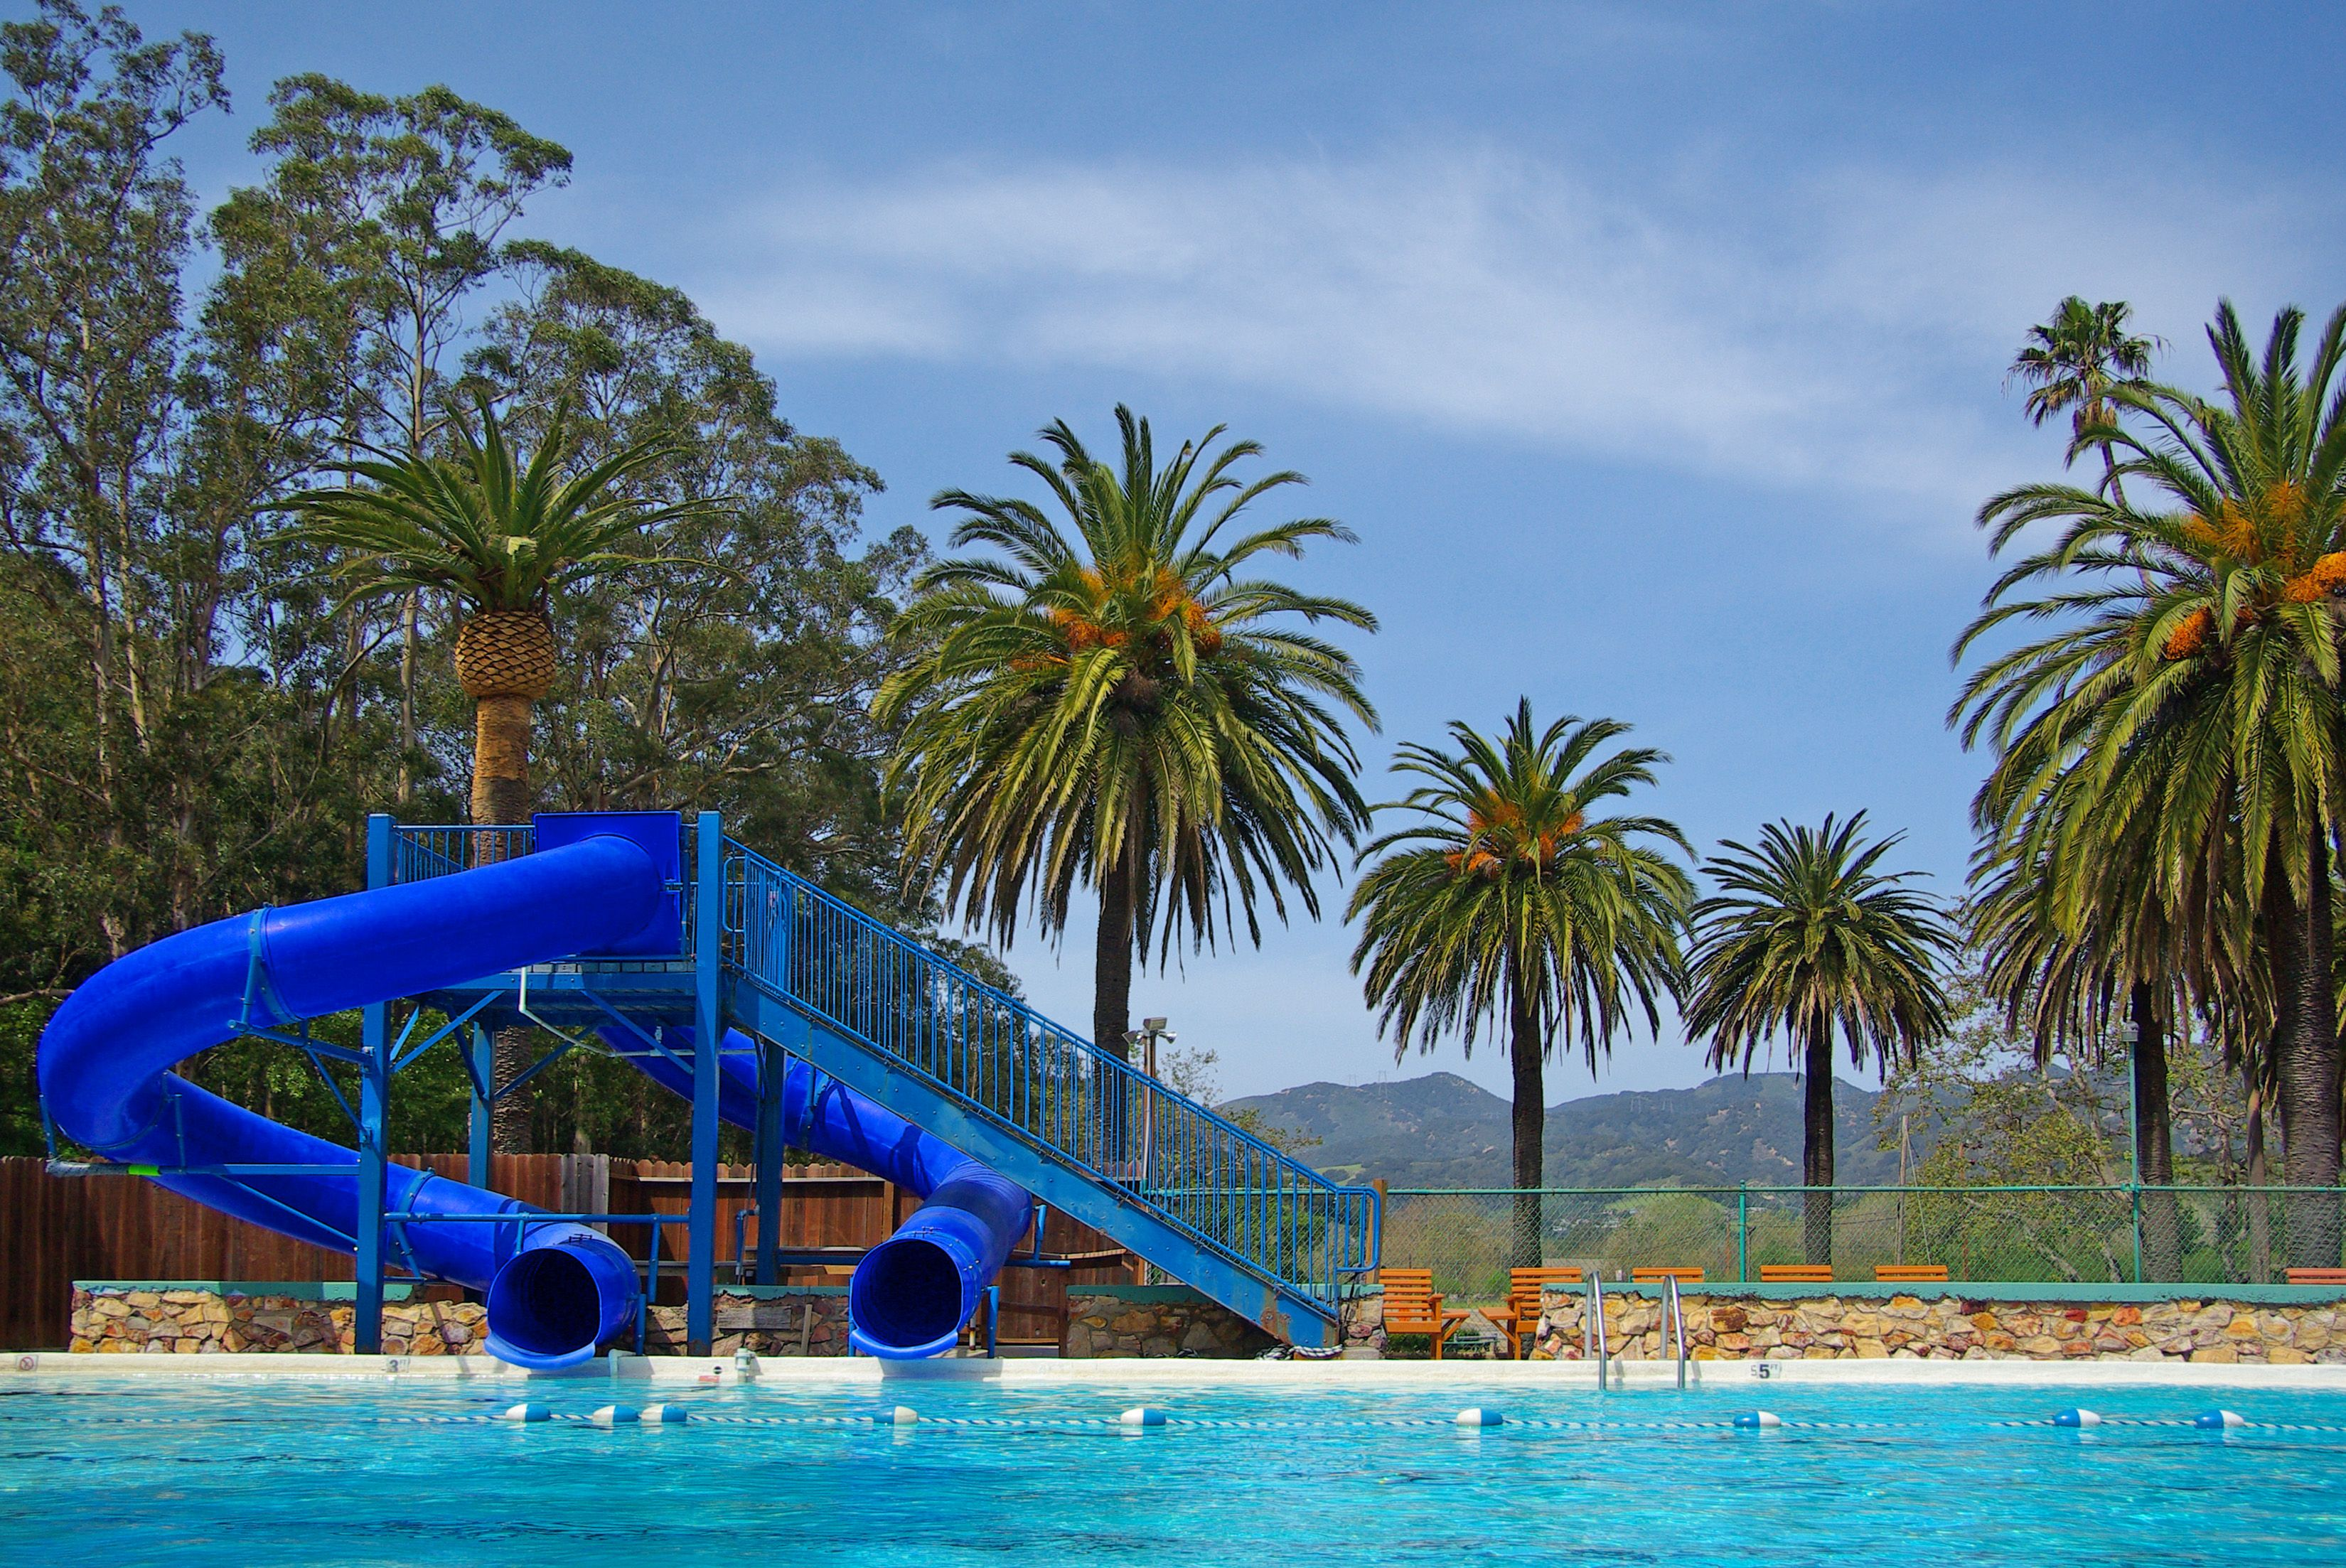 Pin On Things To Do In San Luis Obispo County